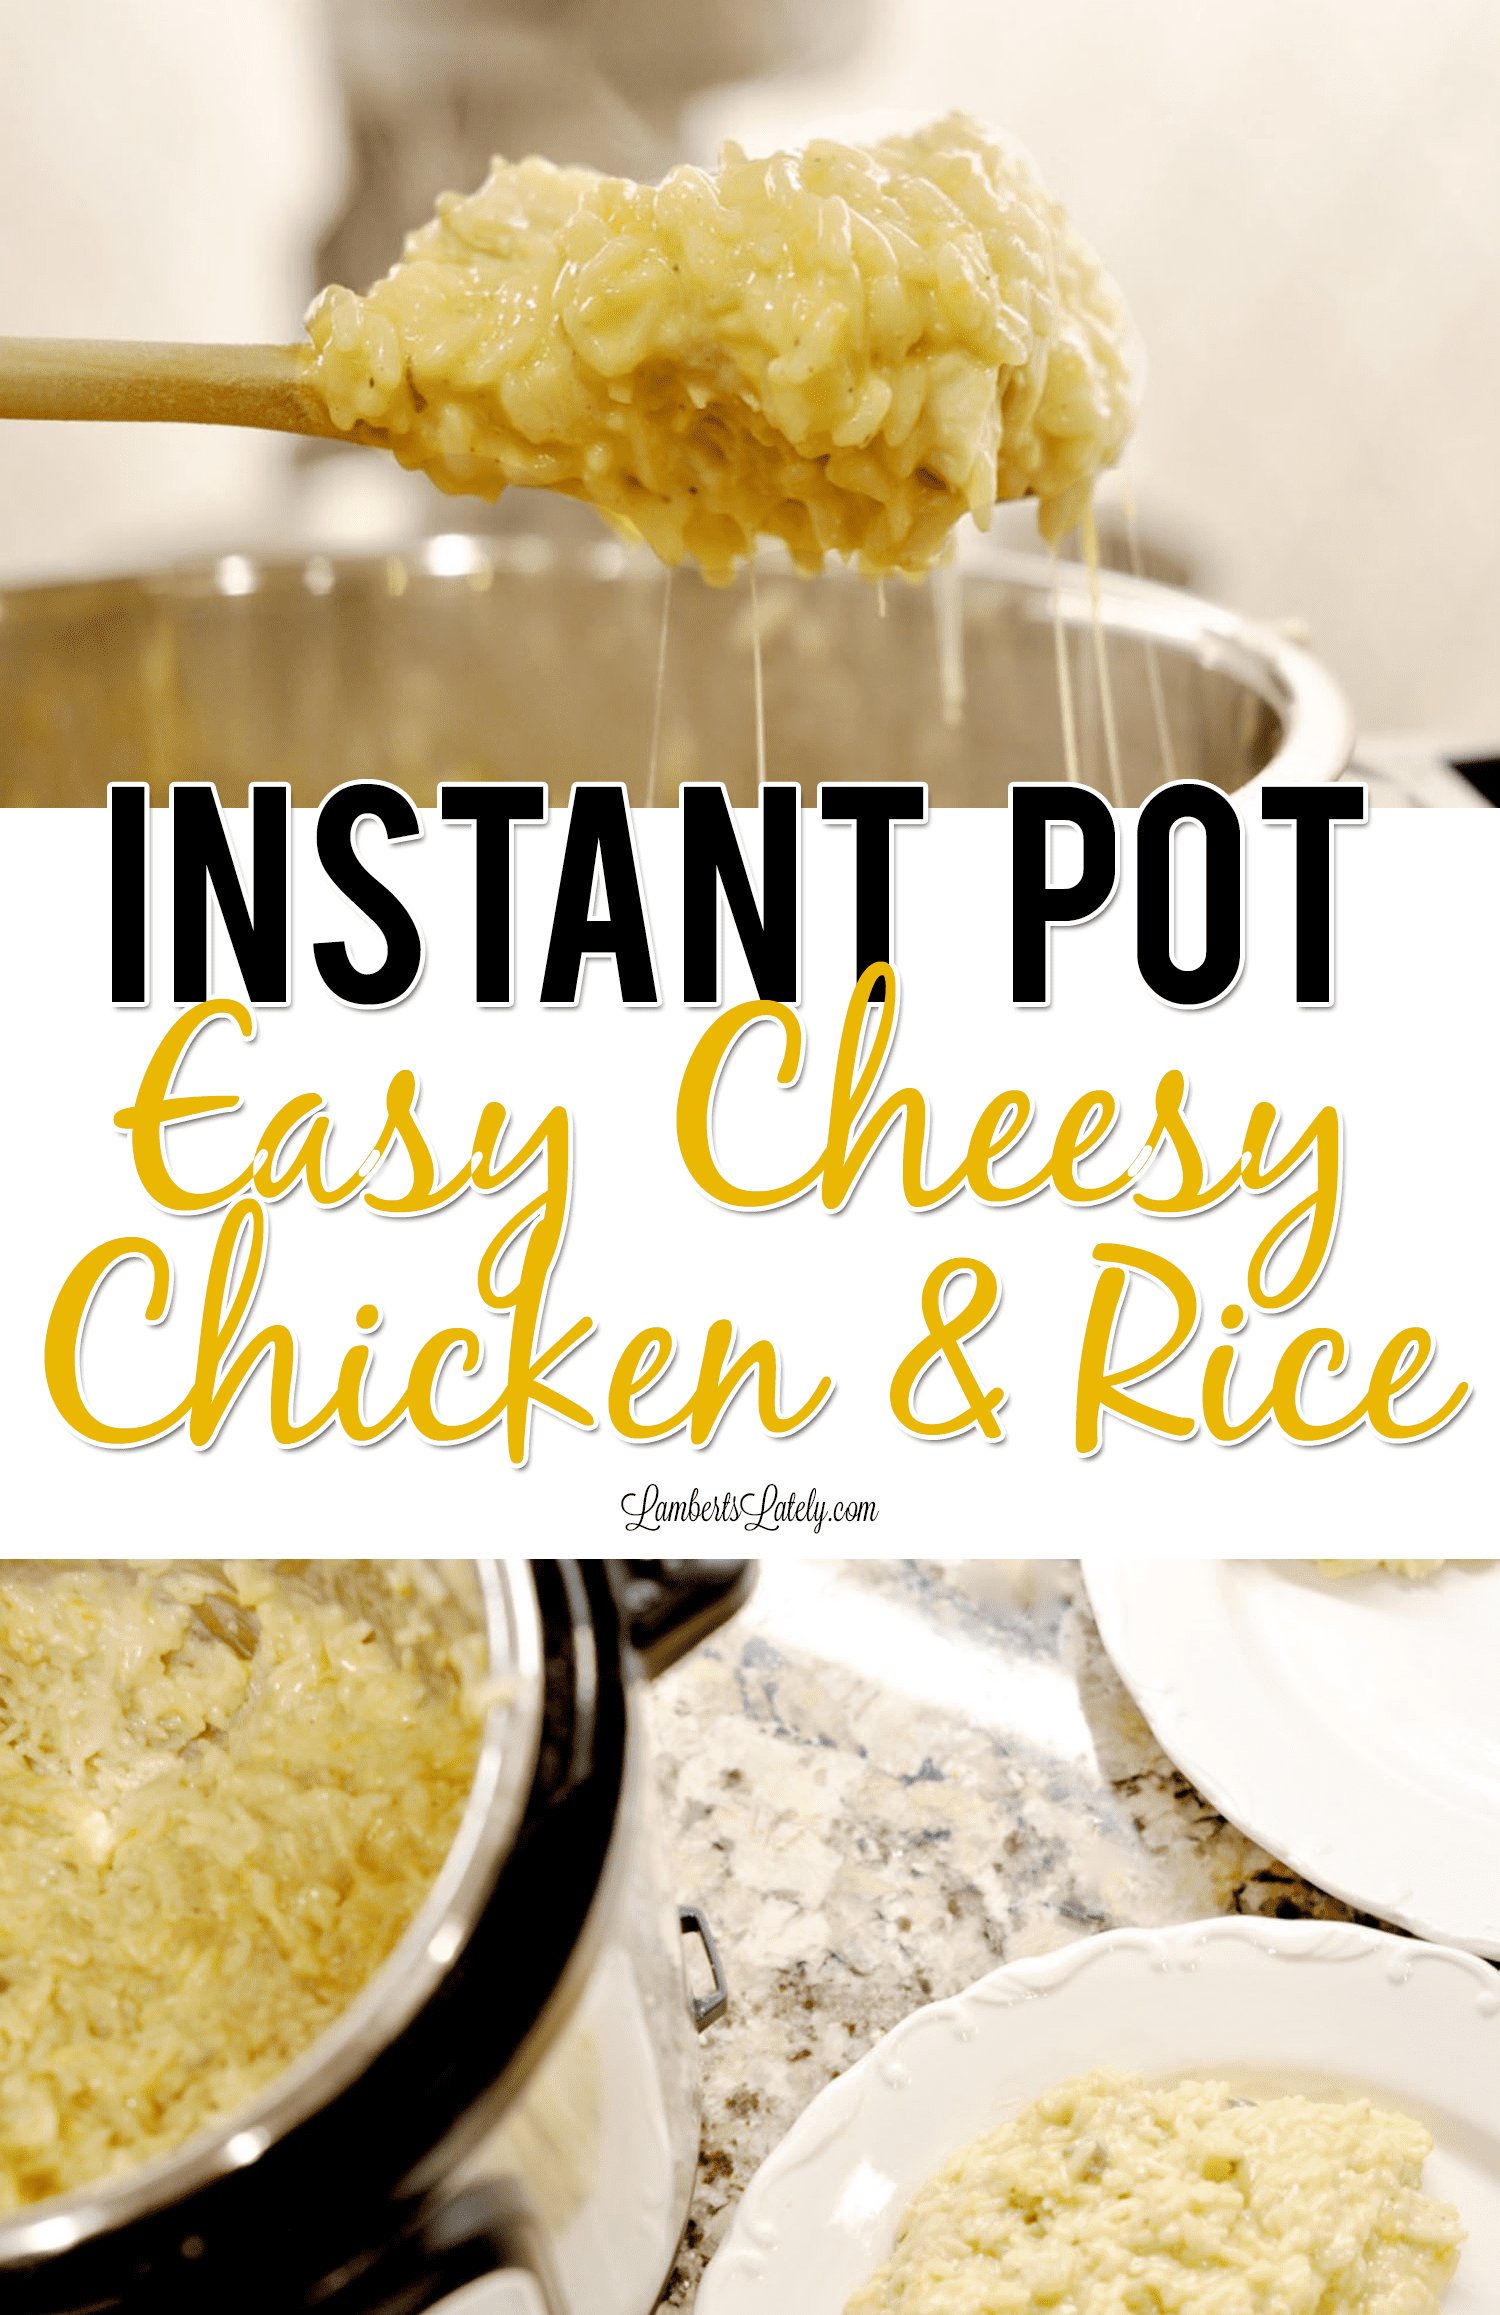 This Instant Pot Cheesy Chicken & Rice uses ingredients like cream soup and cheese to make a simple, crowd-pleasing weeknight dinner that even kids love! This recipe can be prepped in an electric pressure cooker in just minutes.